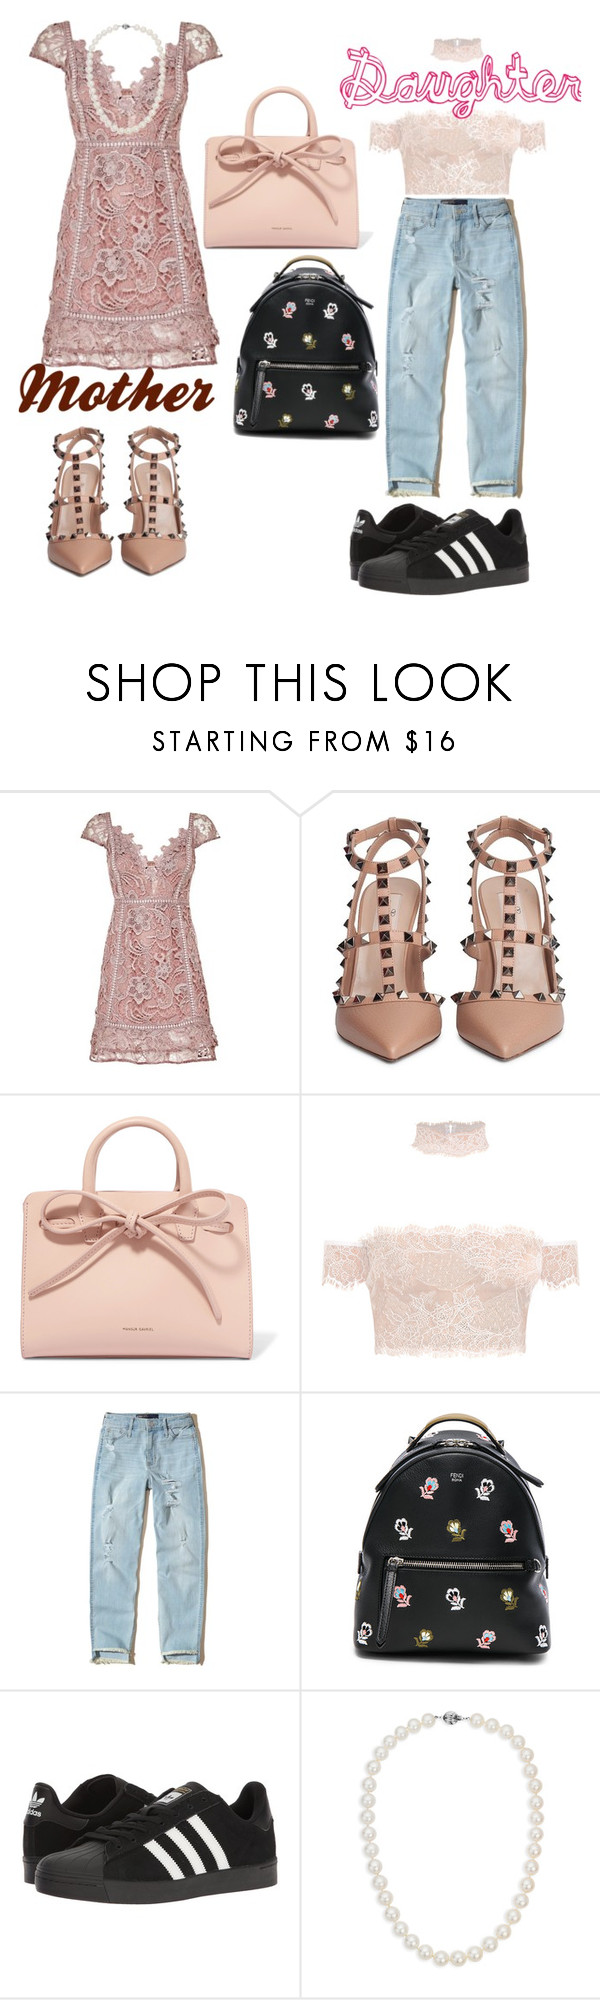 """""""Mother and Daughter"""" by ruelalou on Polyvore featuring Valentino, Mansur Gavriel, Hollister Co., Fendi, adidas and Blue Nile"""